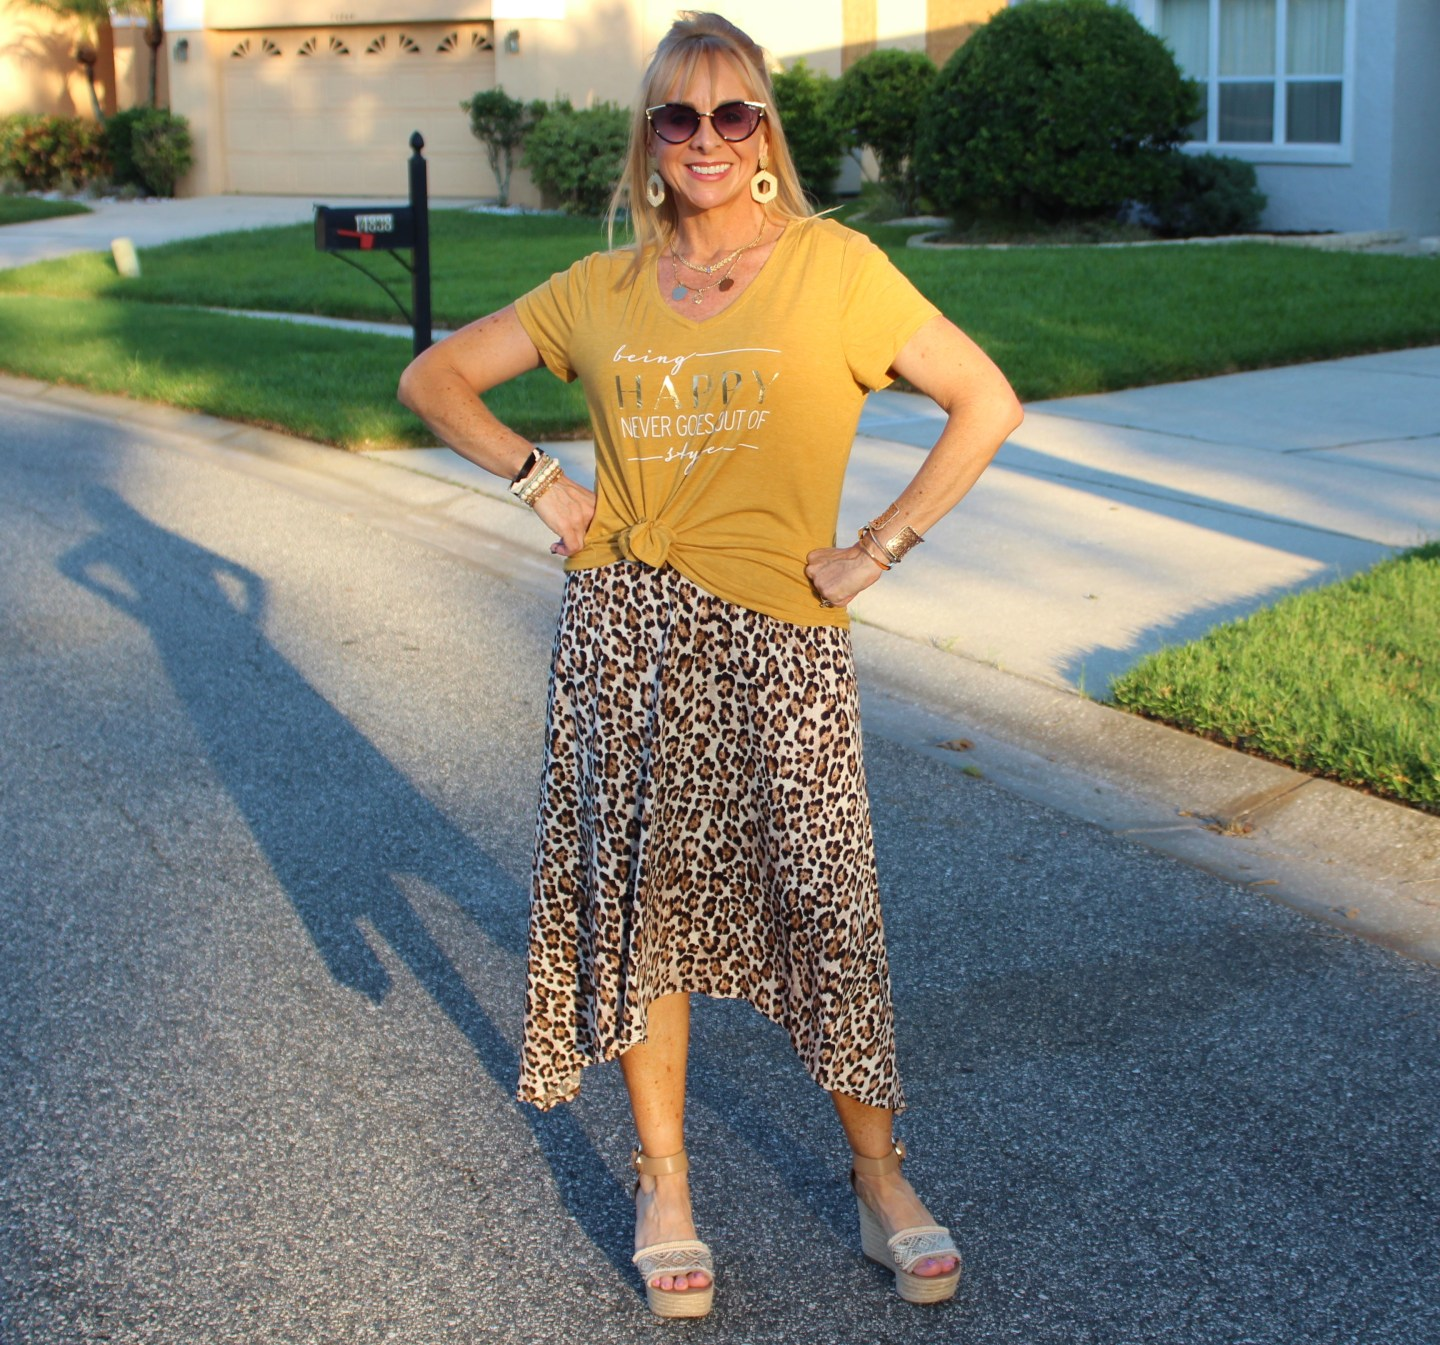 Leopard skirt + Graphic tee